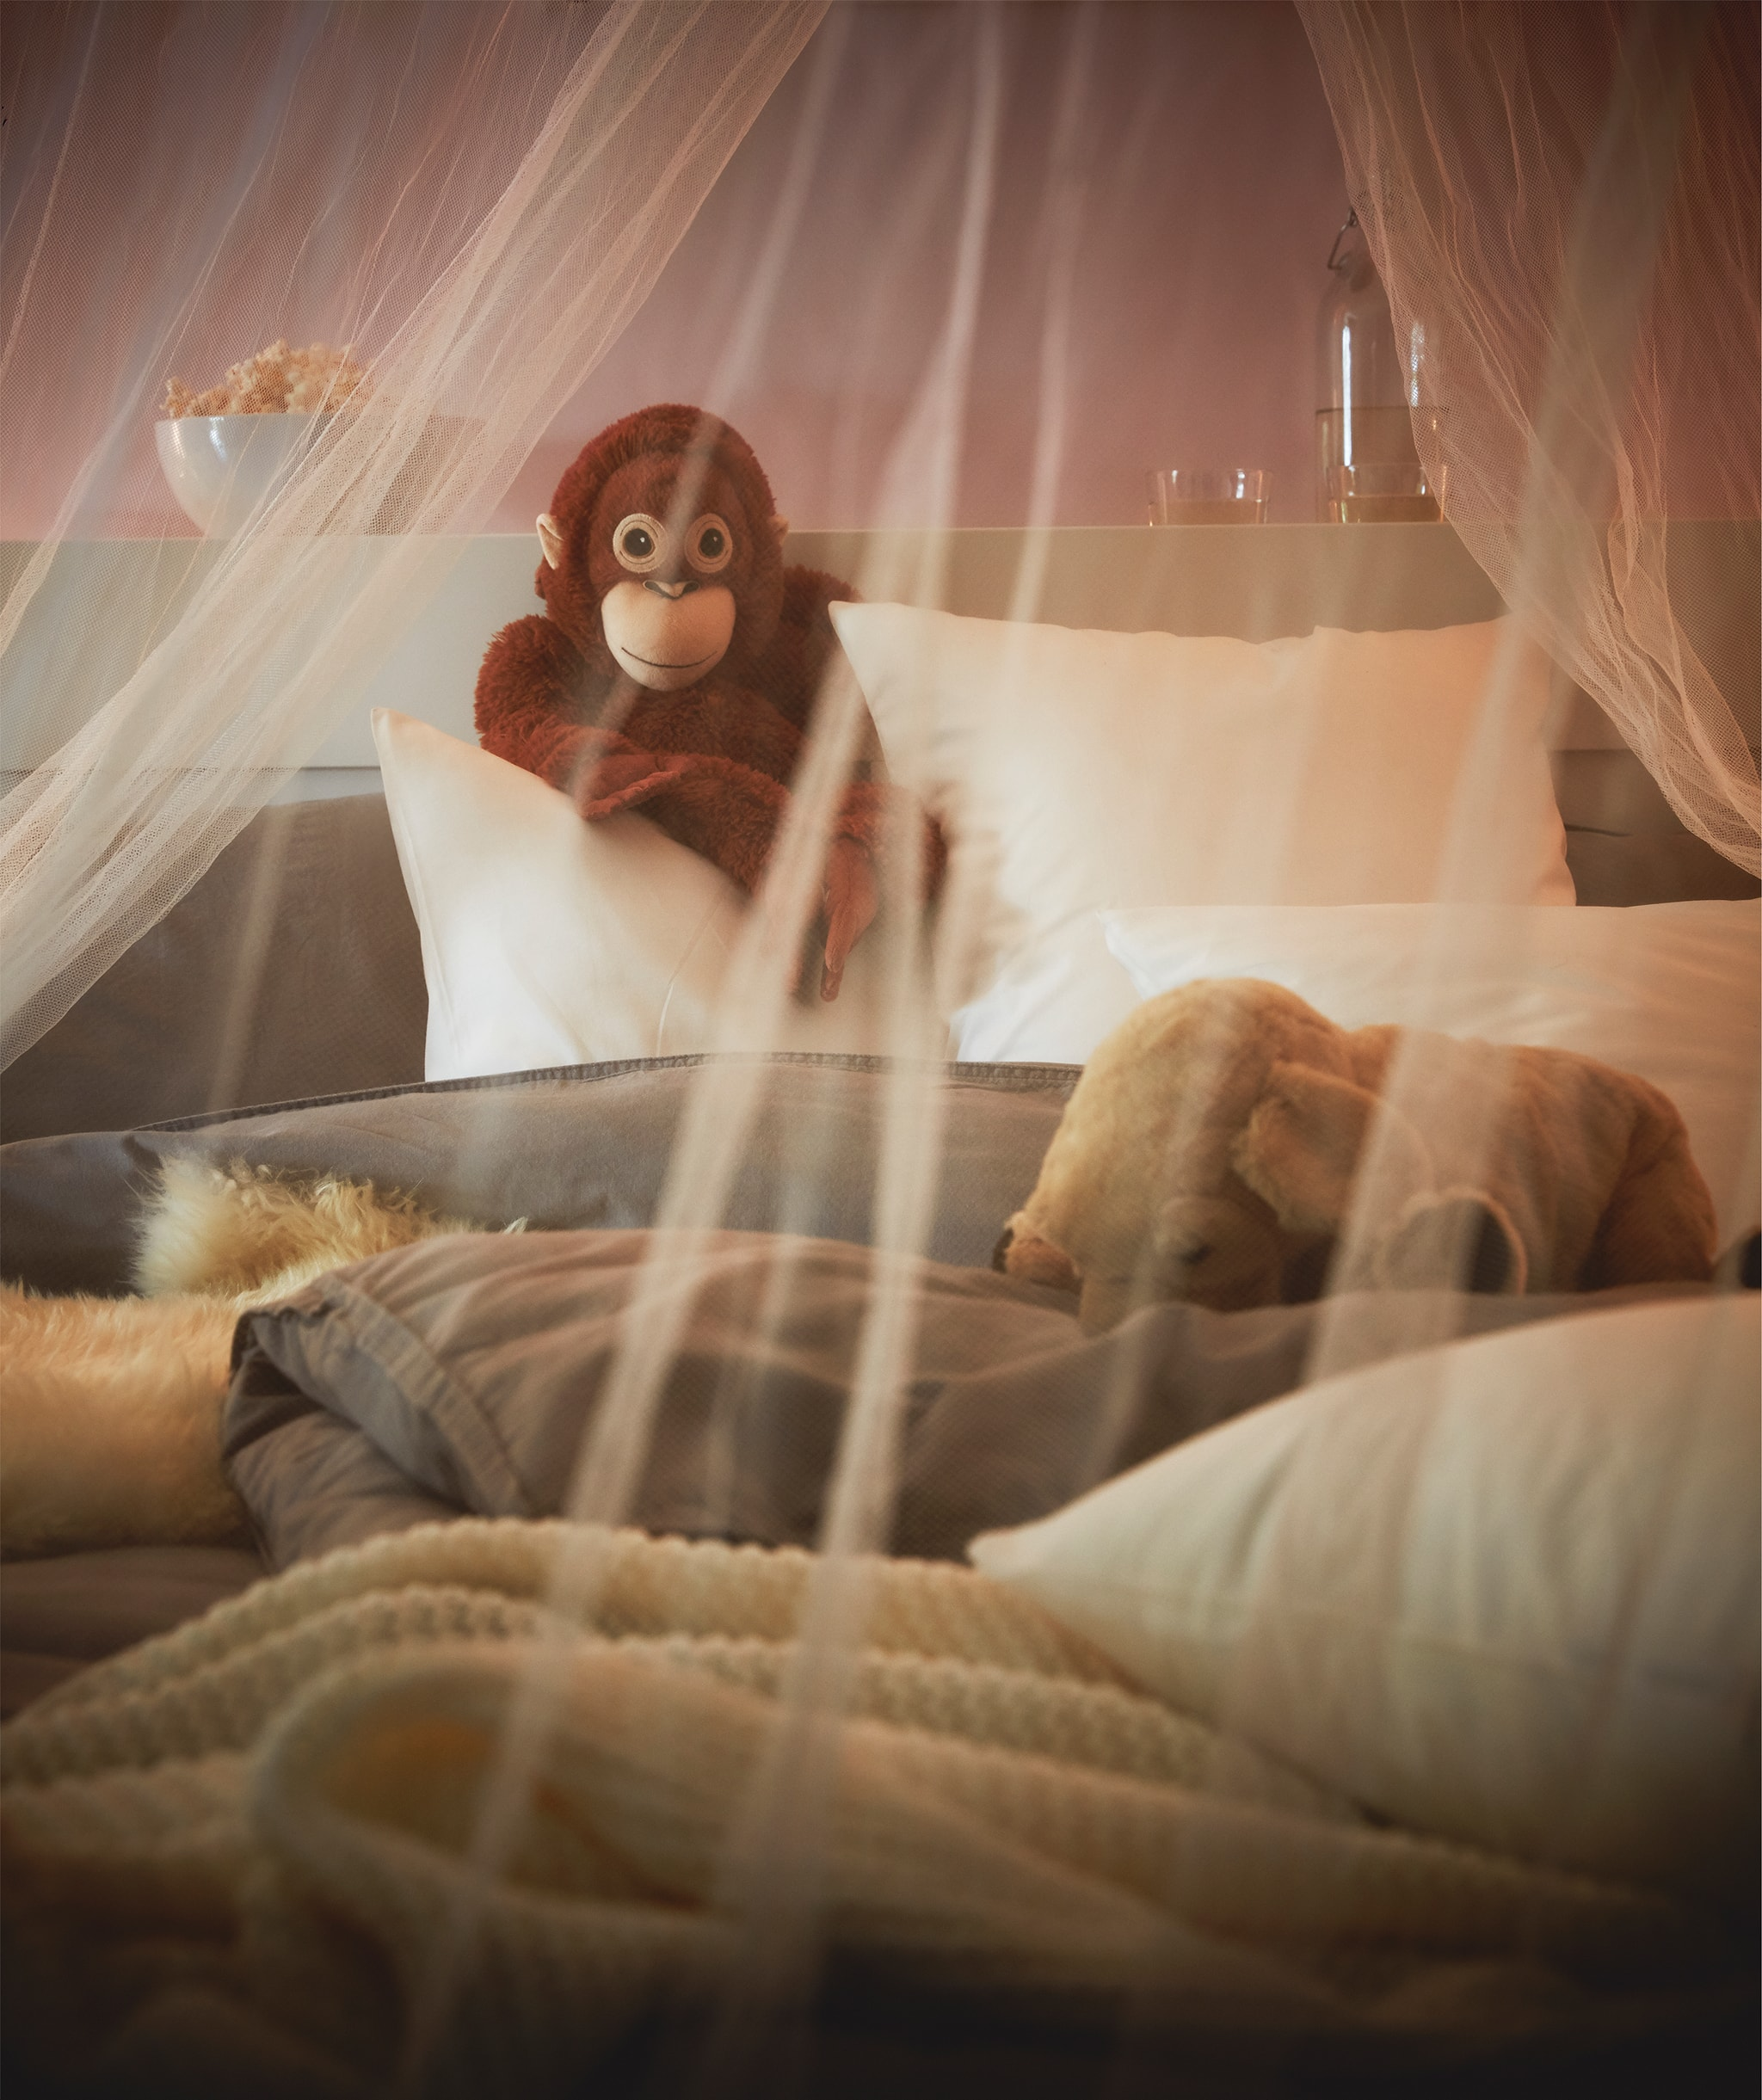 A mosquito net draped over a cosily lit, fluffy, unmade bed, a toy monkey propped up against the headboard.